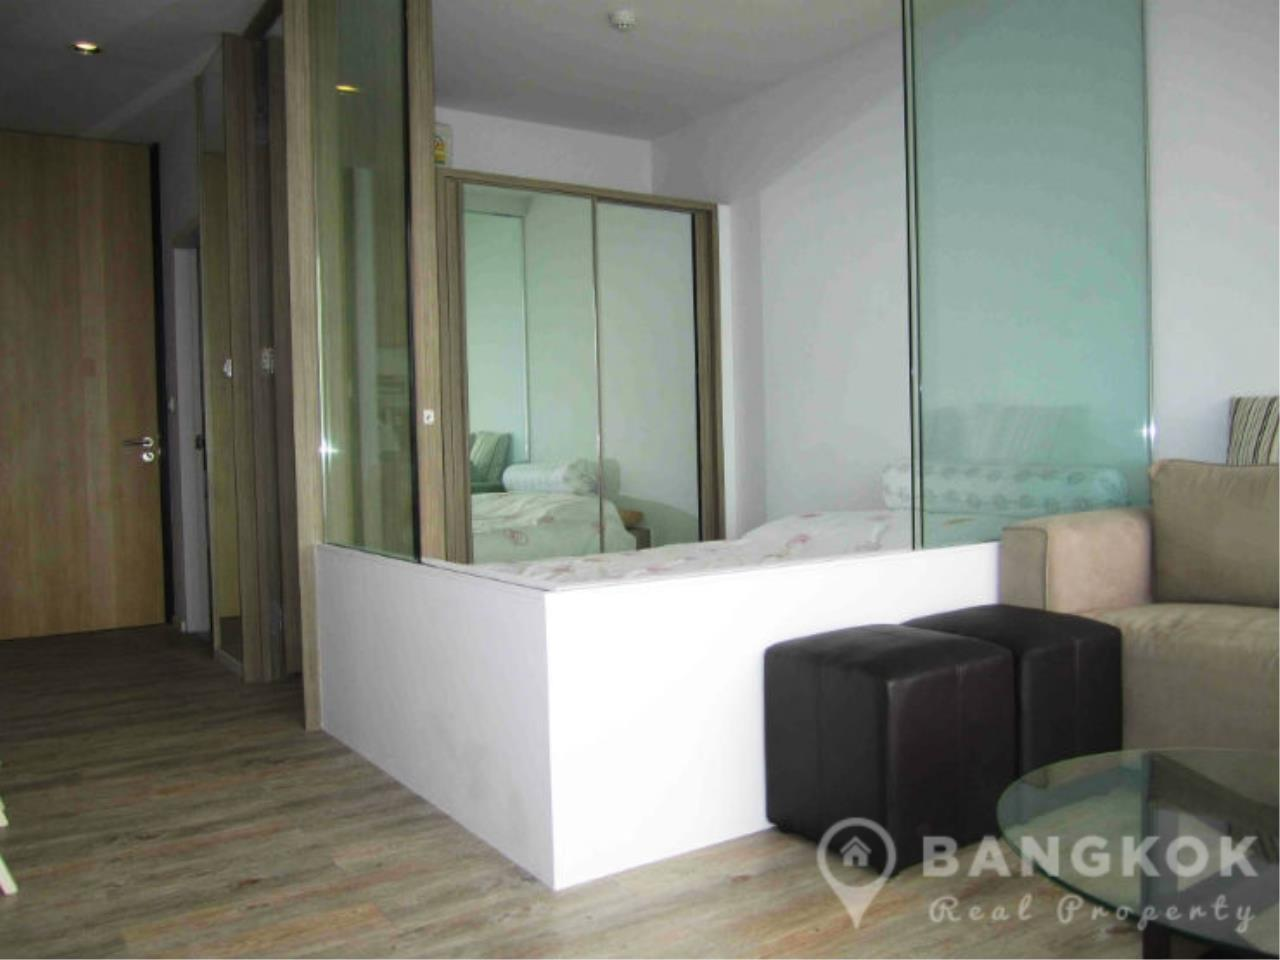 Bangkok Real Property Agency's Issara Ladprao | Stylish High Floor Studio with Stunning Views 2